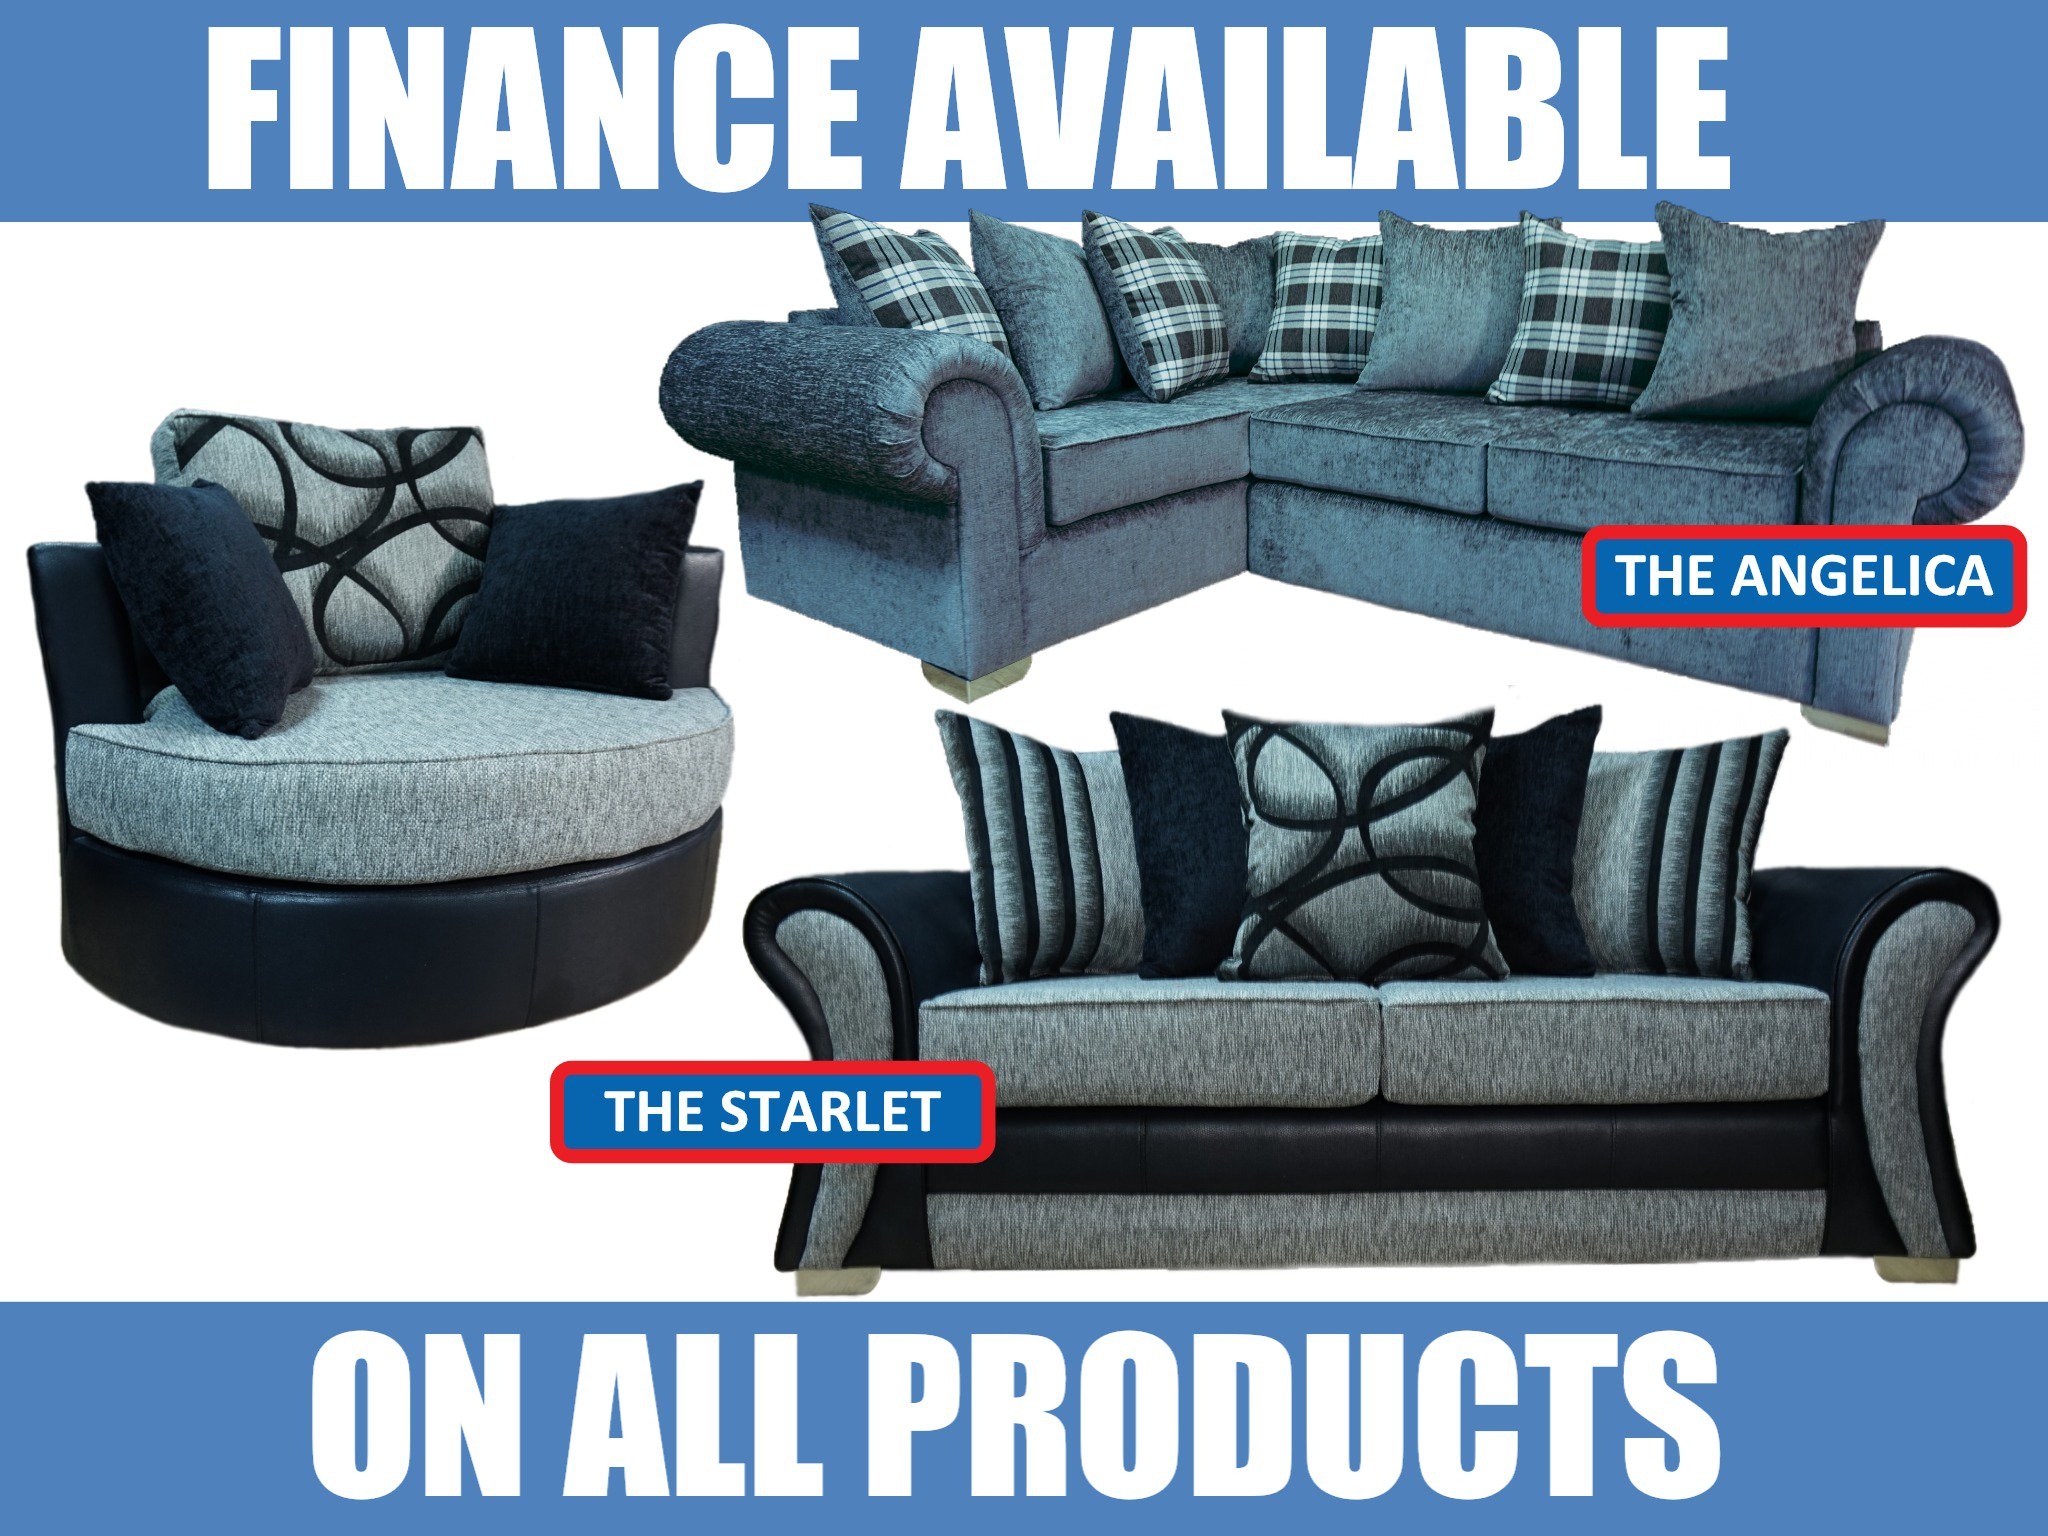 Kc Sofas On Twitter Finance Now Available At Easy Lication And Instant Decision All Products Online In